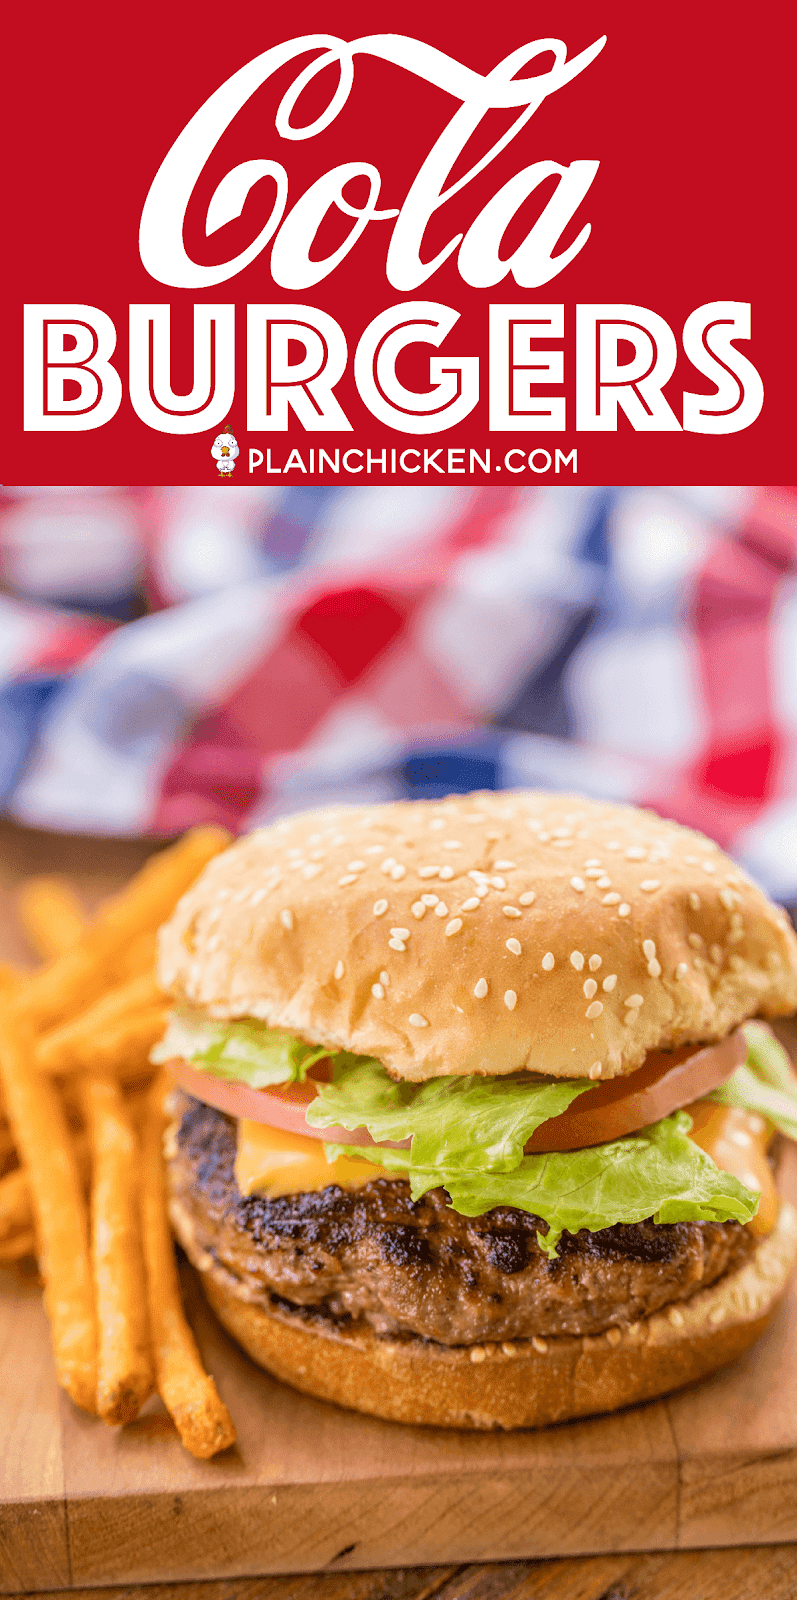 Cola Burgers - seriously delicious!! Ground beef, coke, French dressing, saltine crackers, and parmesan cheese. Top with your favorite cheese!! Can make patties ahead of time and freeze for later. Great for all your cookouts and tailgates! YUM! #burgers #grilling #tailgating #cookout